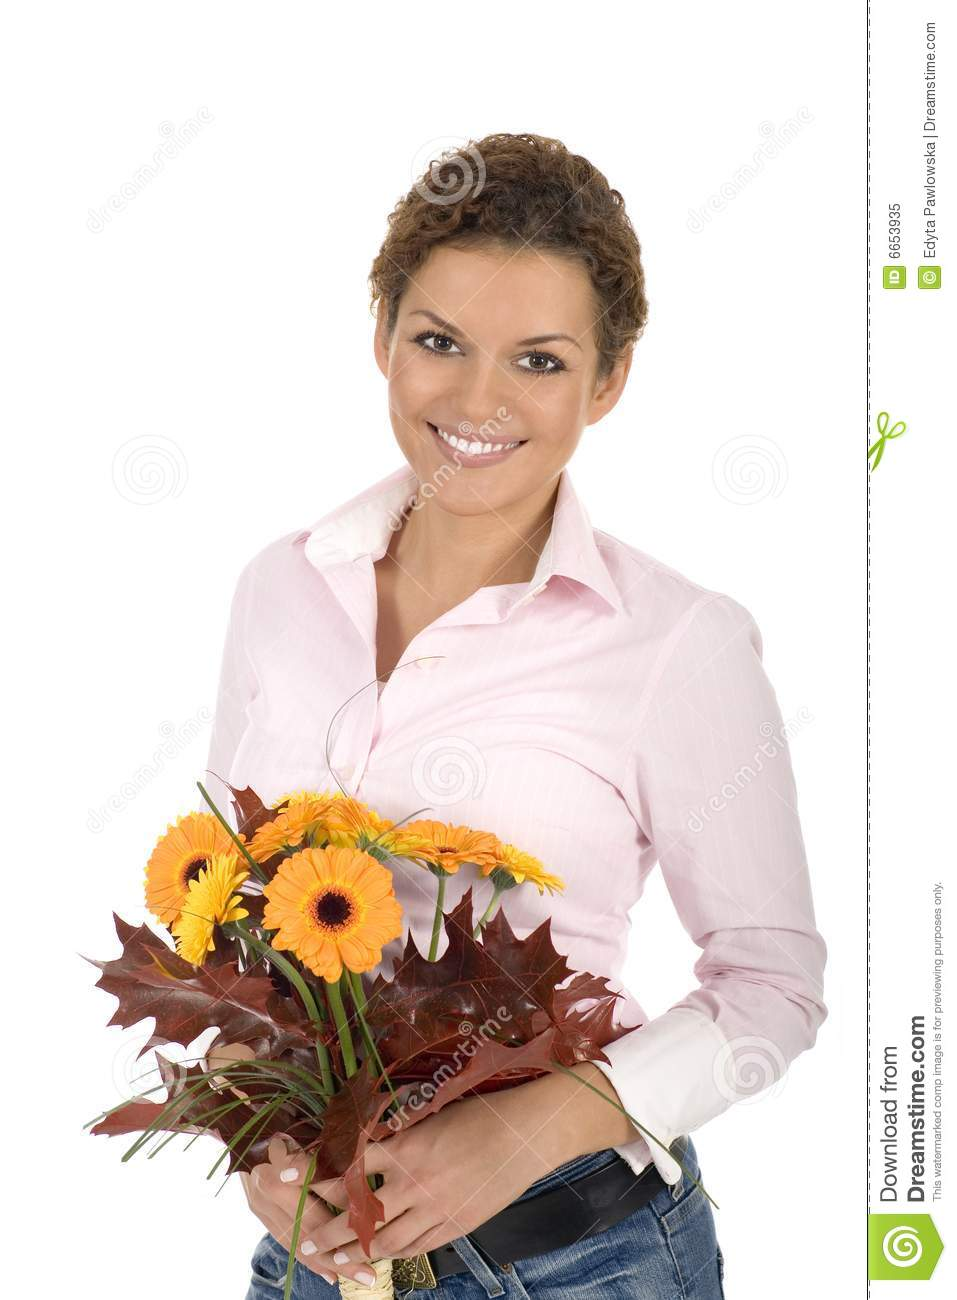 Woman Holding Bunch Of Flowers Royalty Free Stock Photo ...